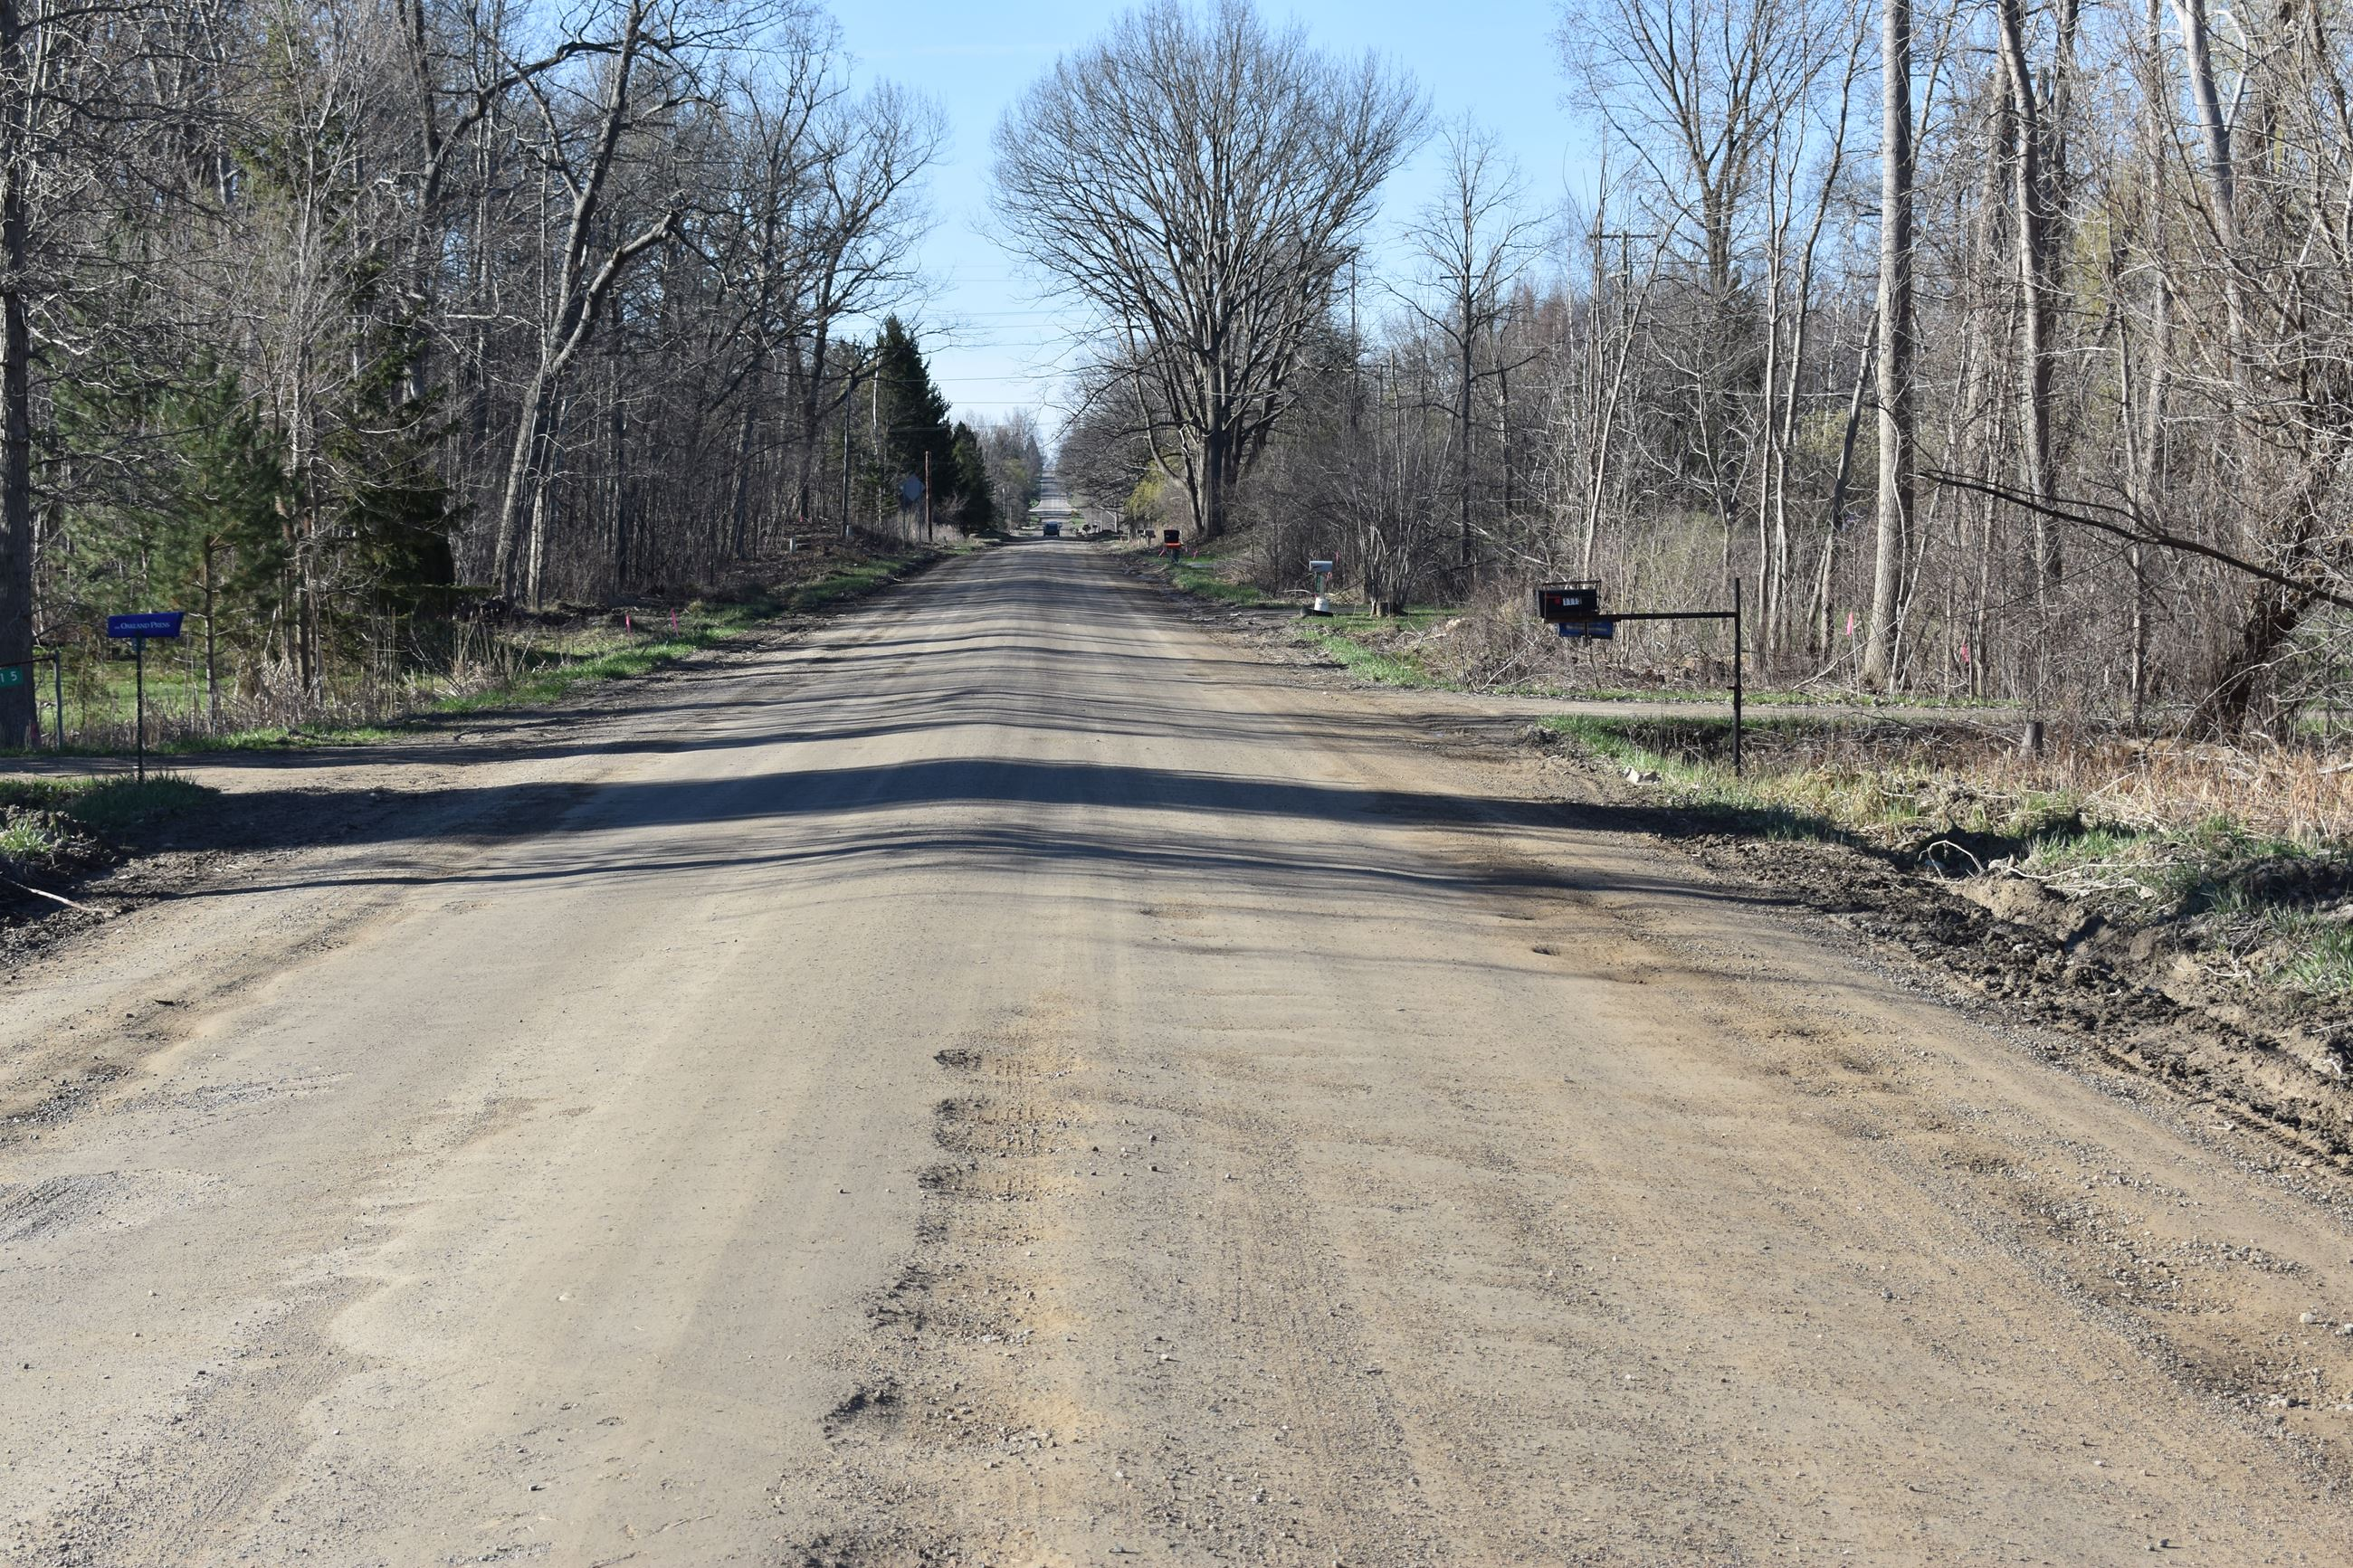 Sashabaw Road north of Sherwood Road pre-construction photo taken on Apr. 24, 2019